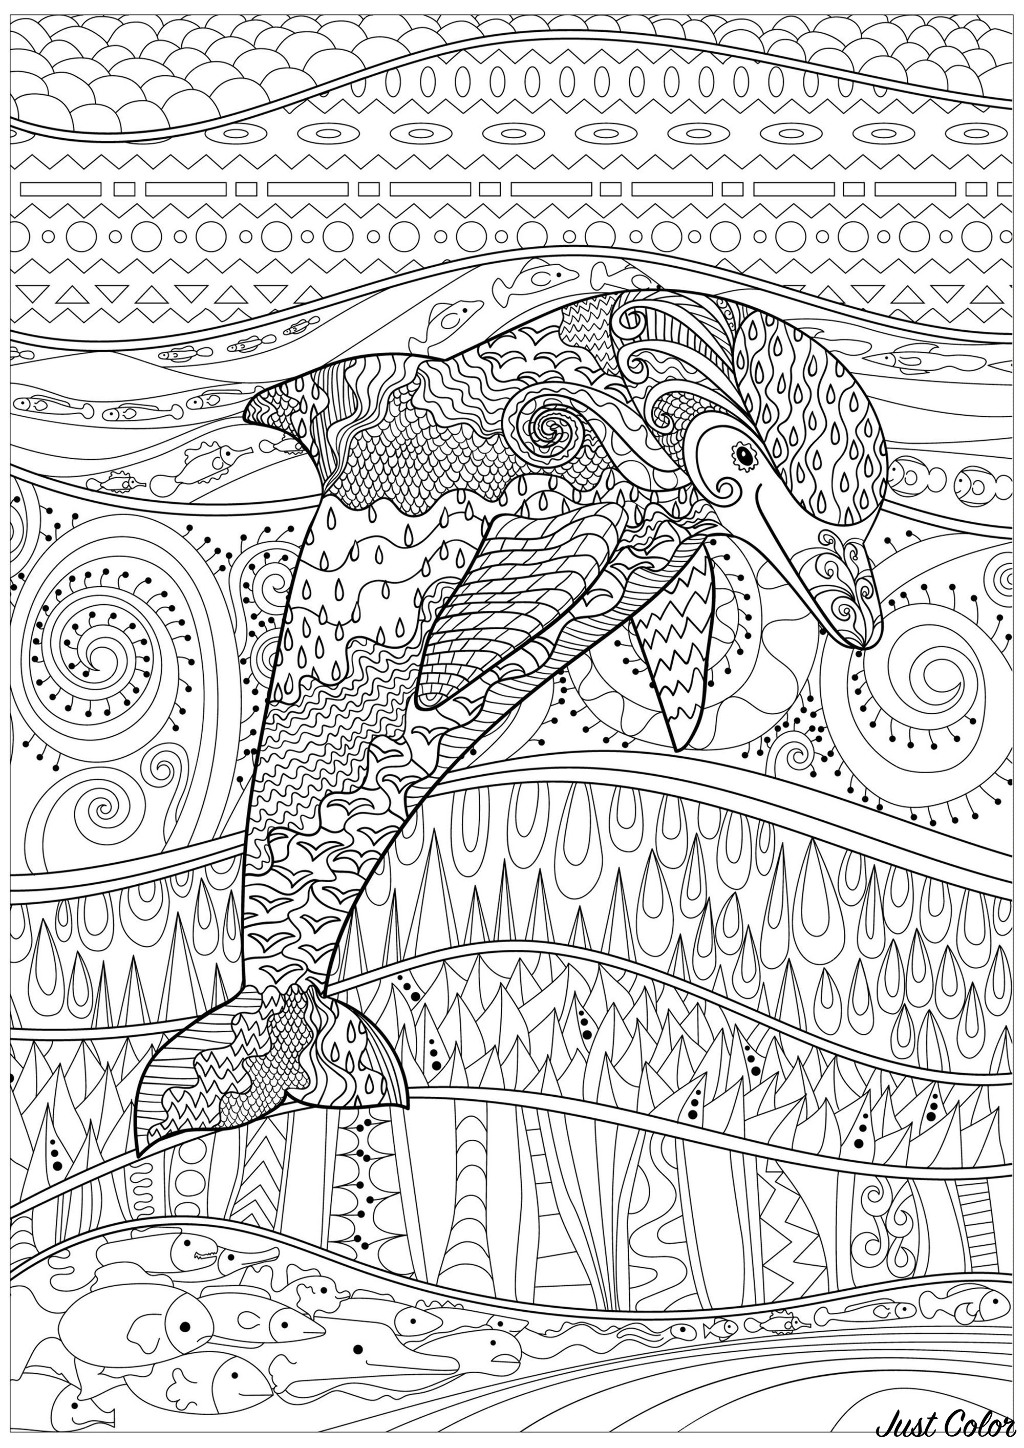 wt2 coloring page happy dolphin